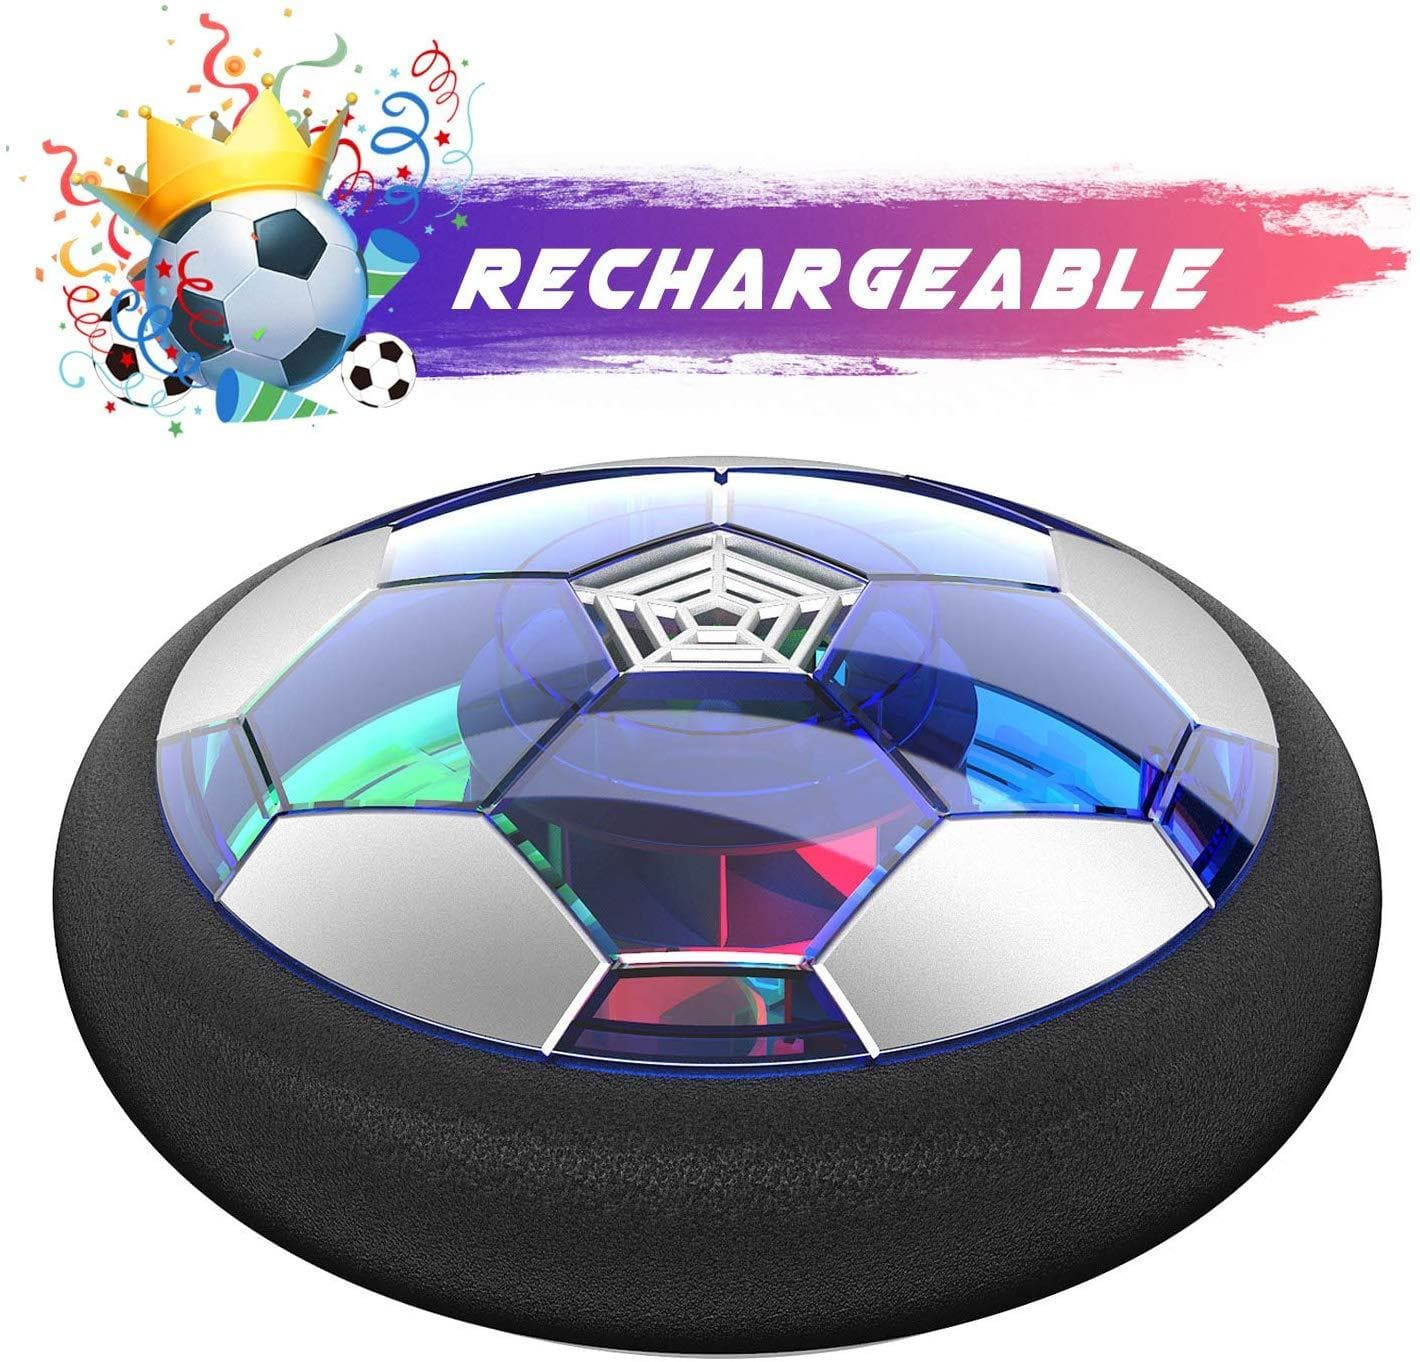 Rechargeable Hover Soccer Ball